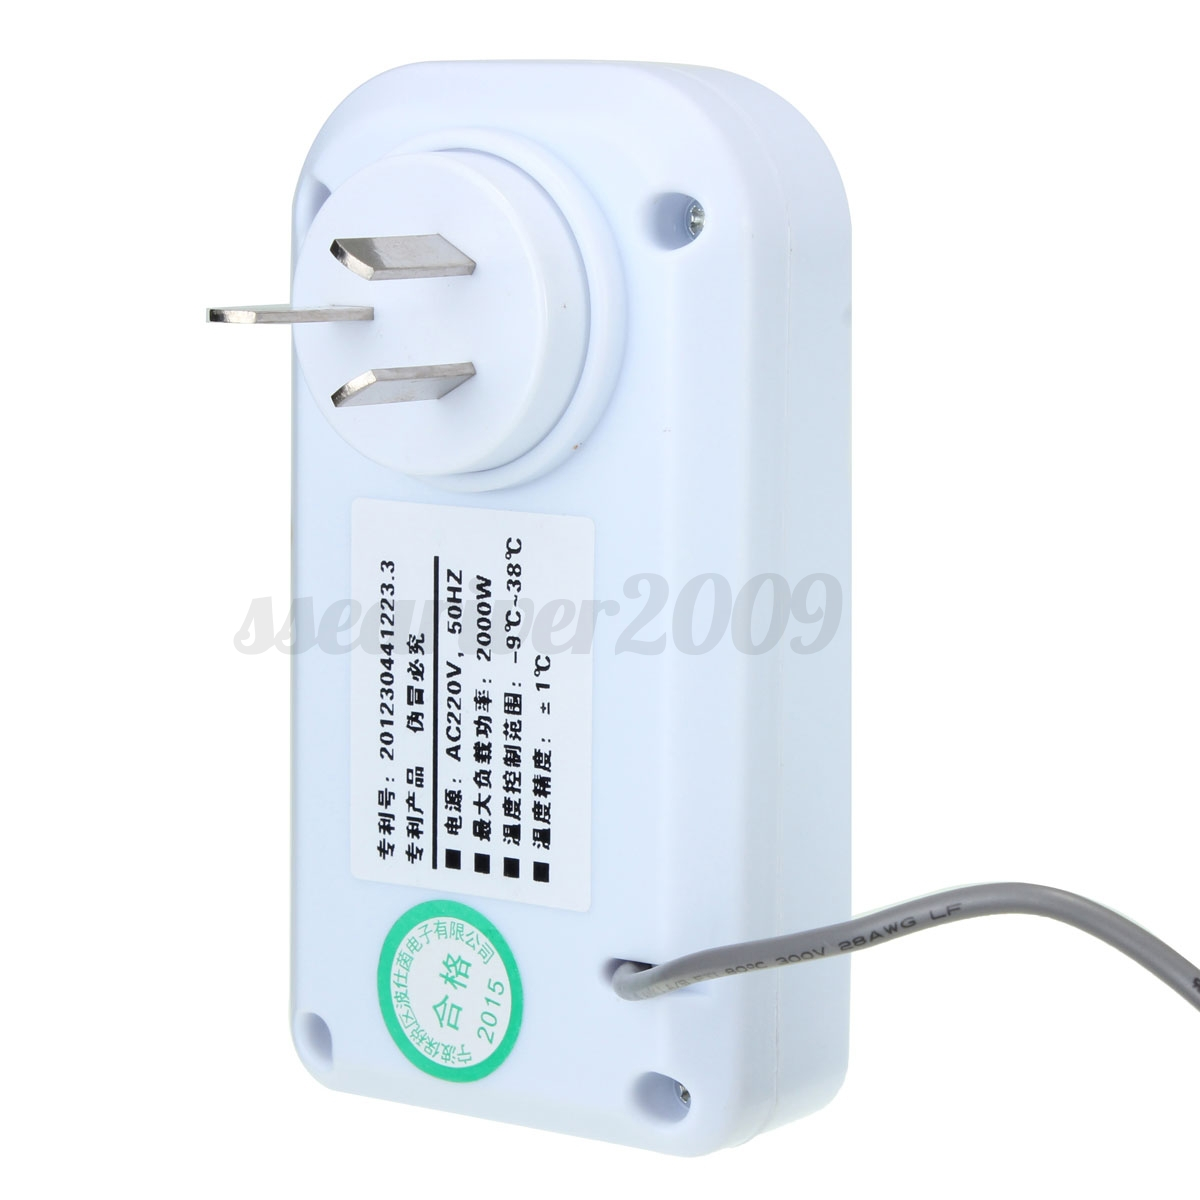 Refrigerator Thermostat Temperature Controller For Aquarium Greenhouse #26A581